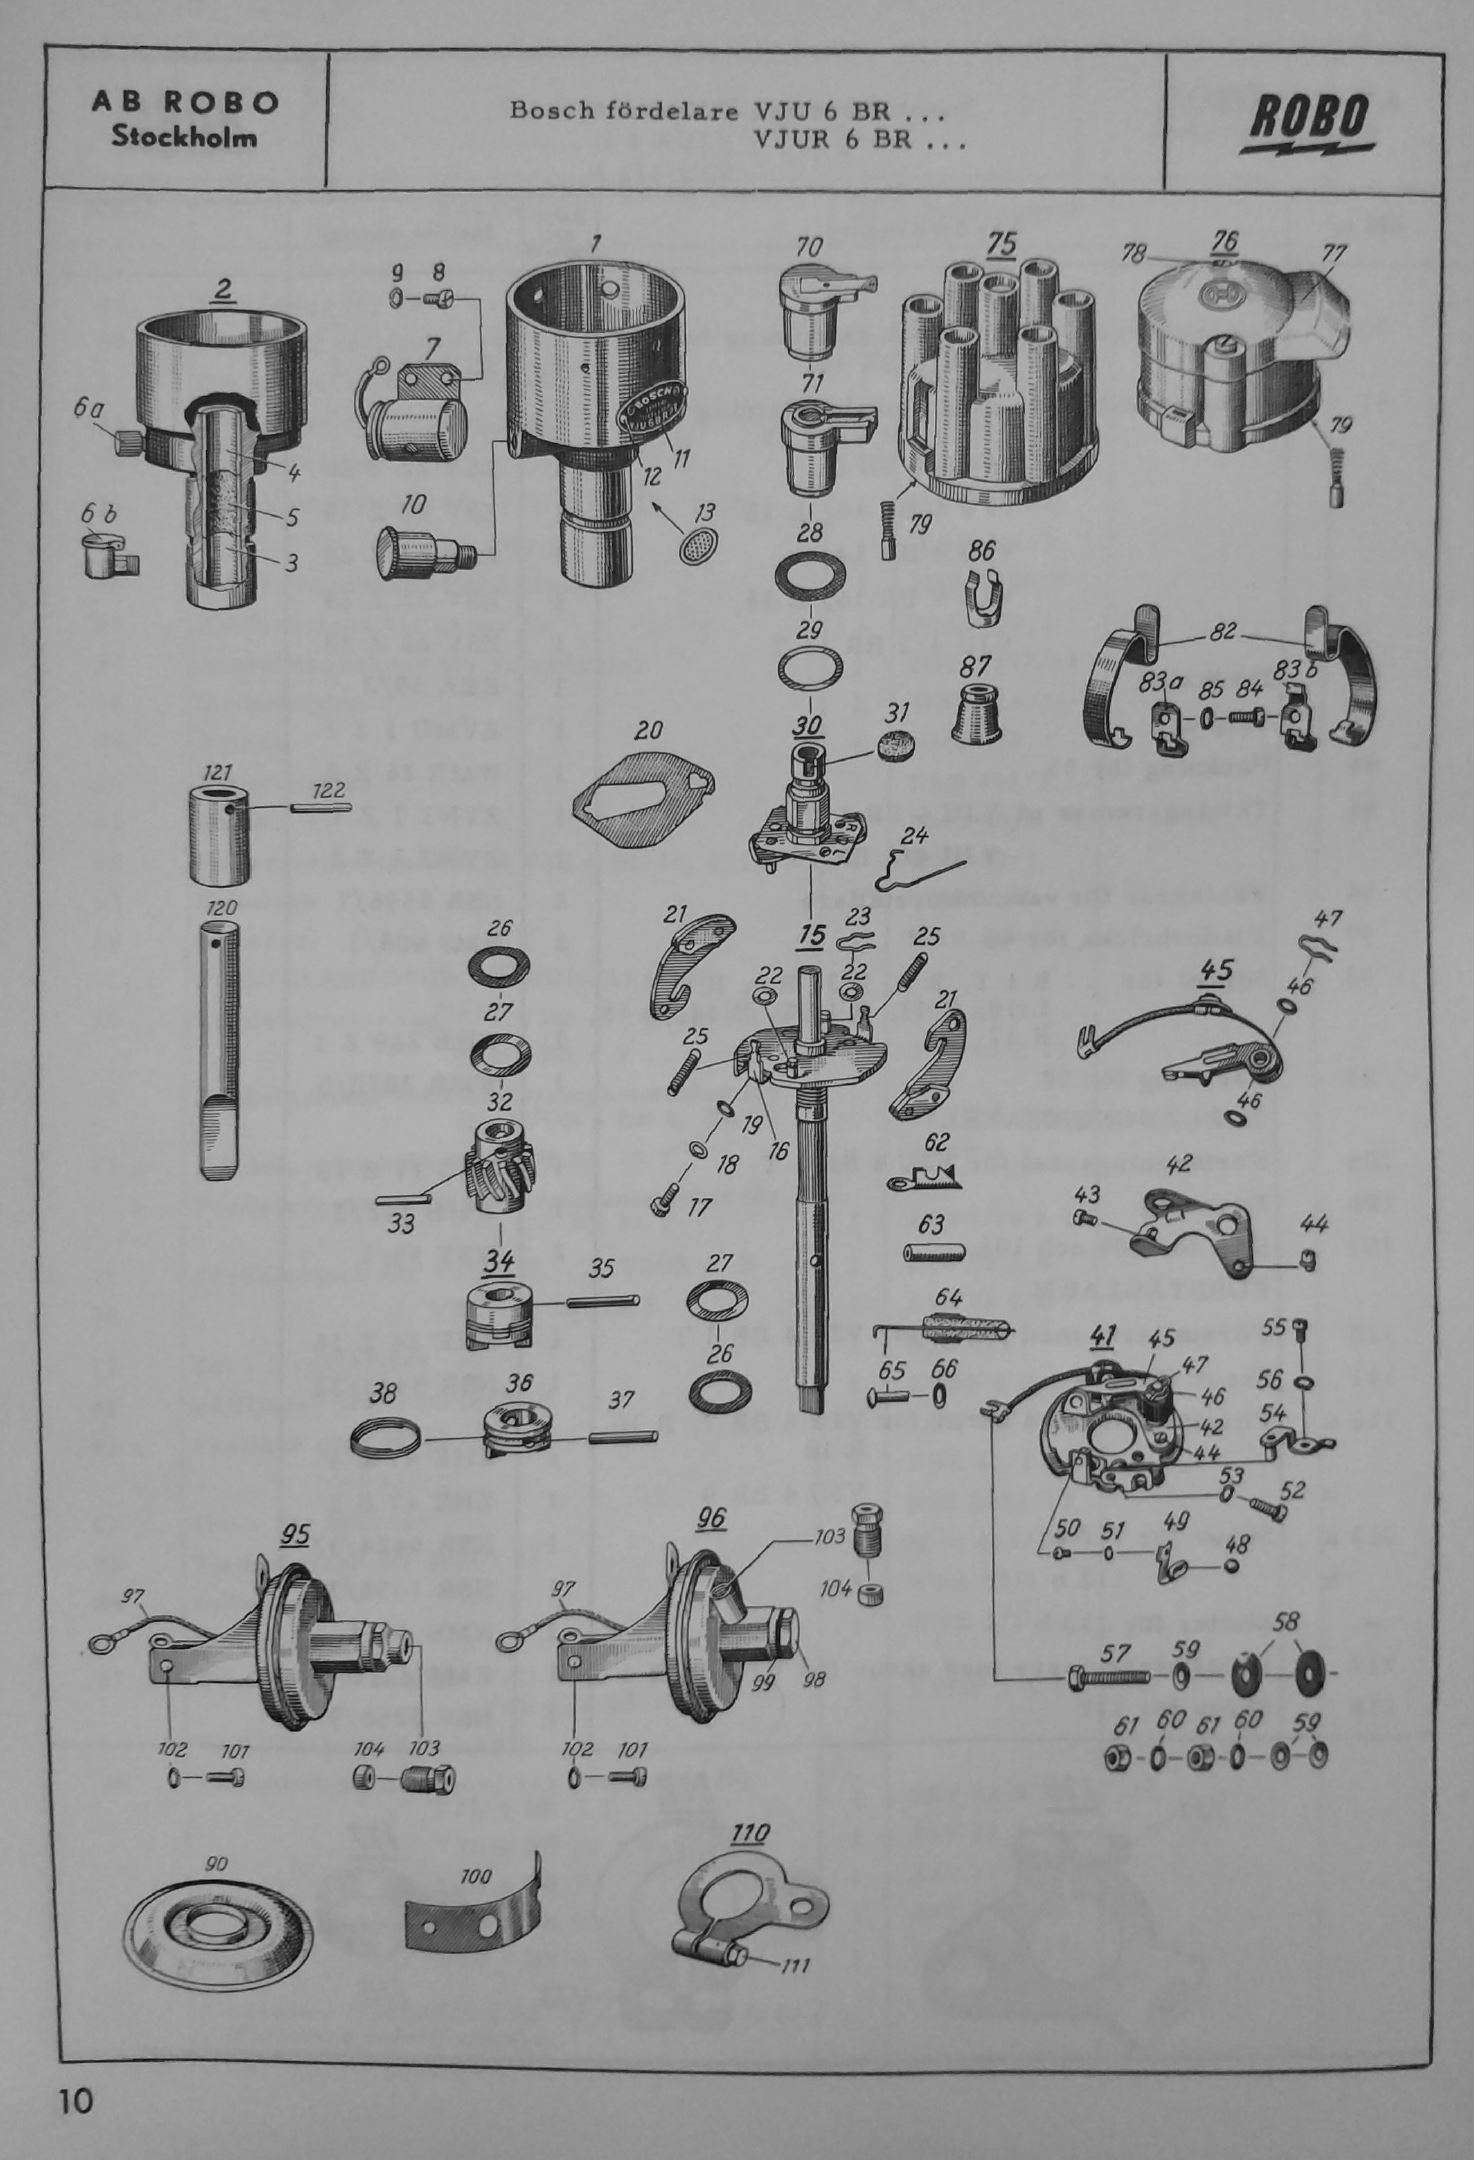 Swedish exploded-view drawing of Bosch distributor VJU R 6 BR with parts list